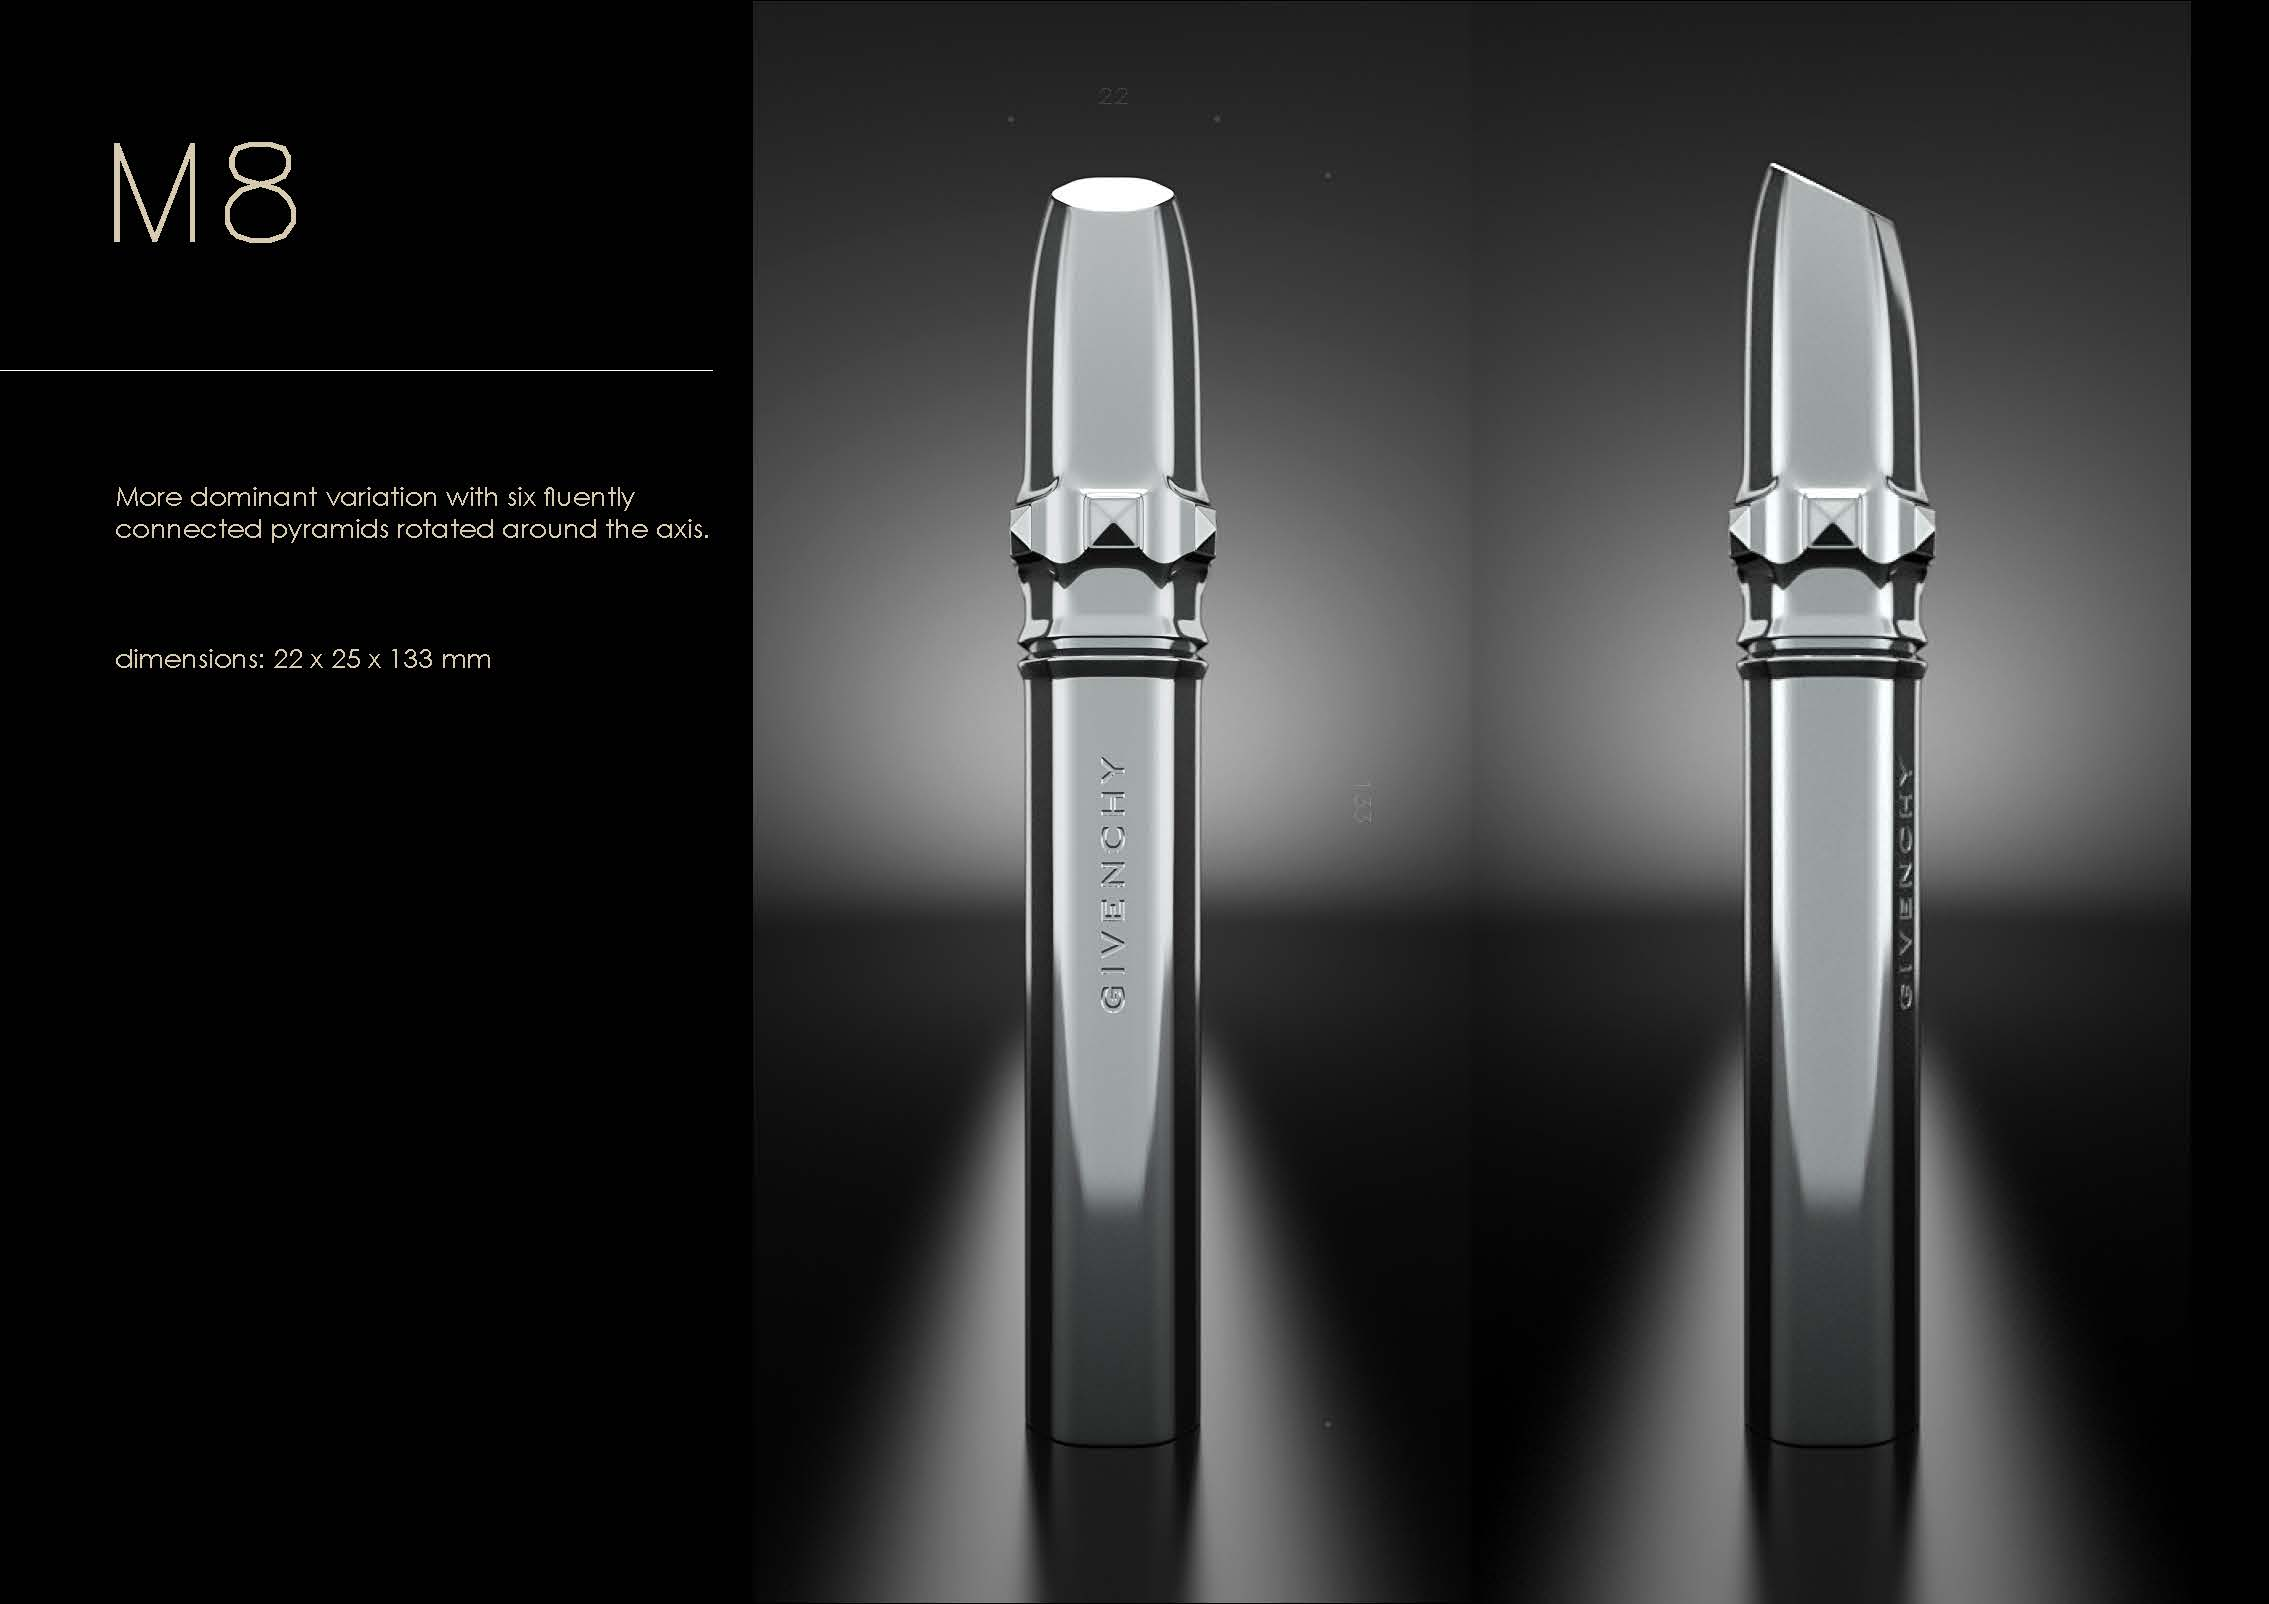 Givenchy mascaras w dimensions, I_Page_18.jpg